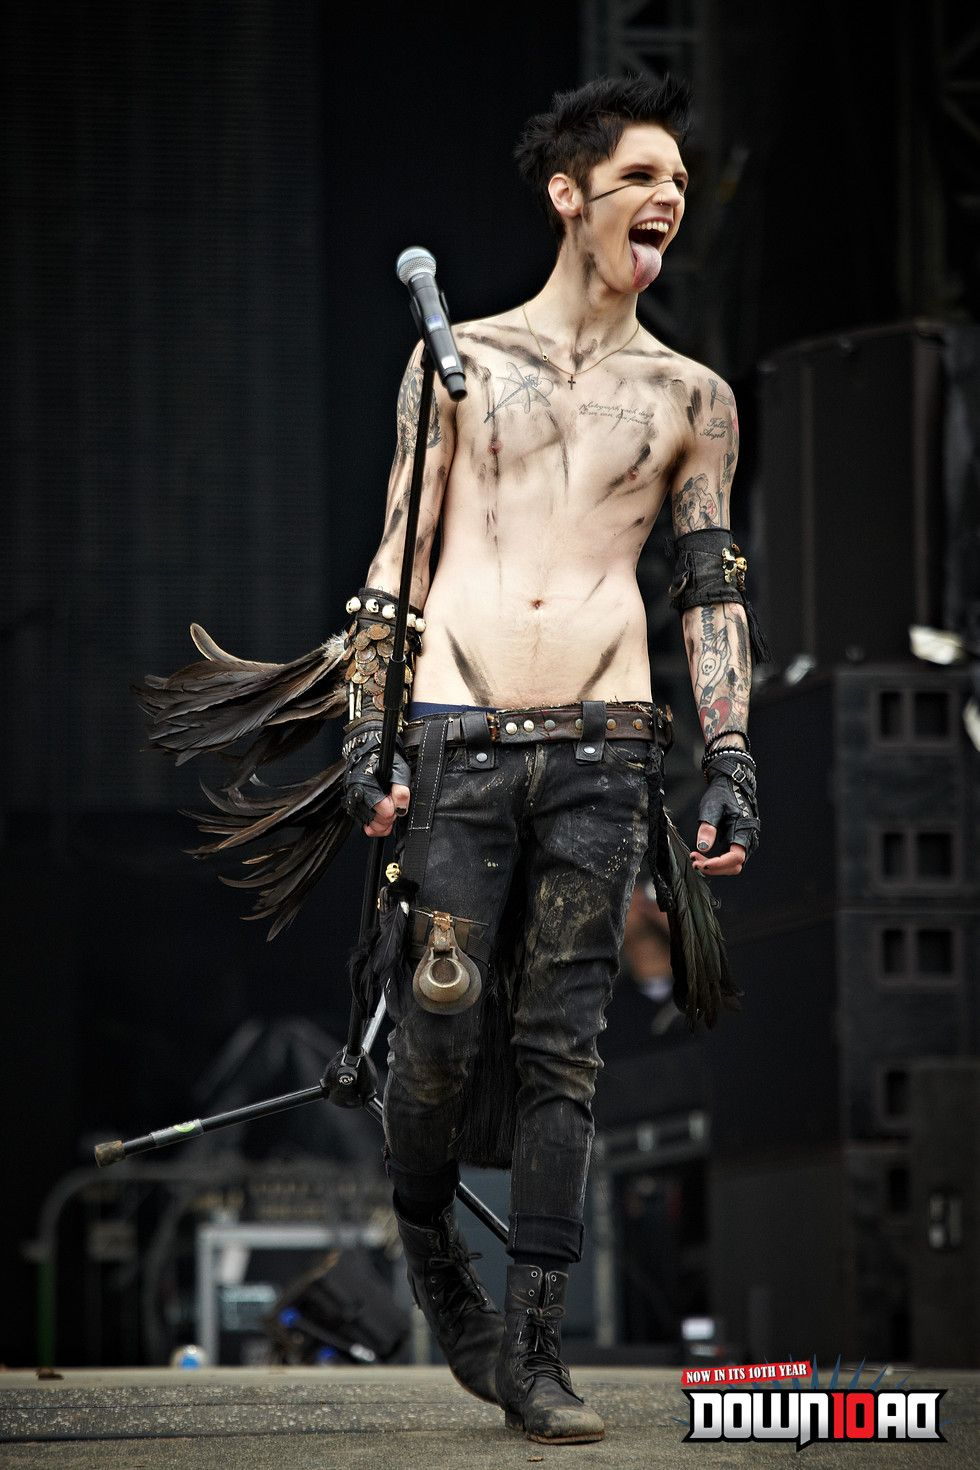 Black Veil Brides Download Festival 2012 The Crowd Didnt Like Him